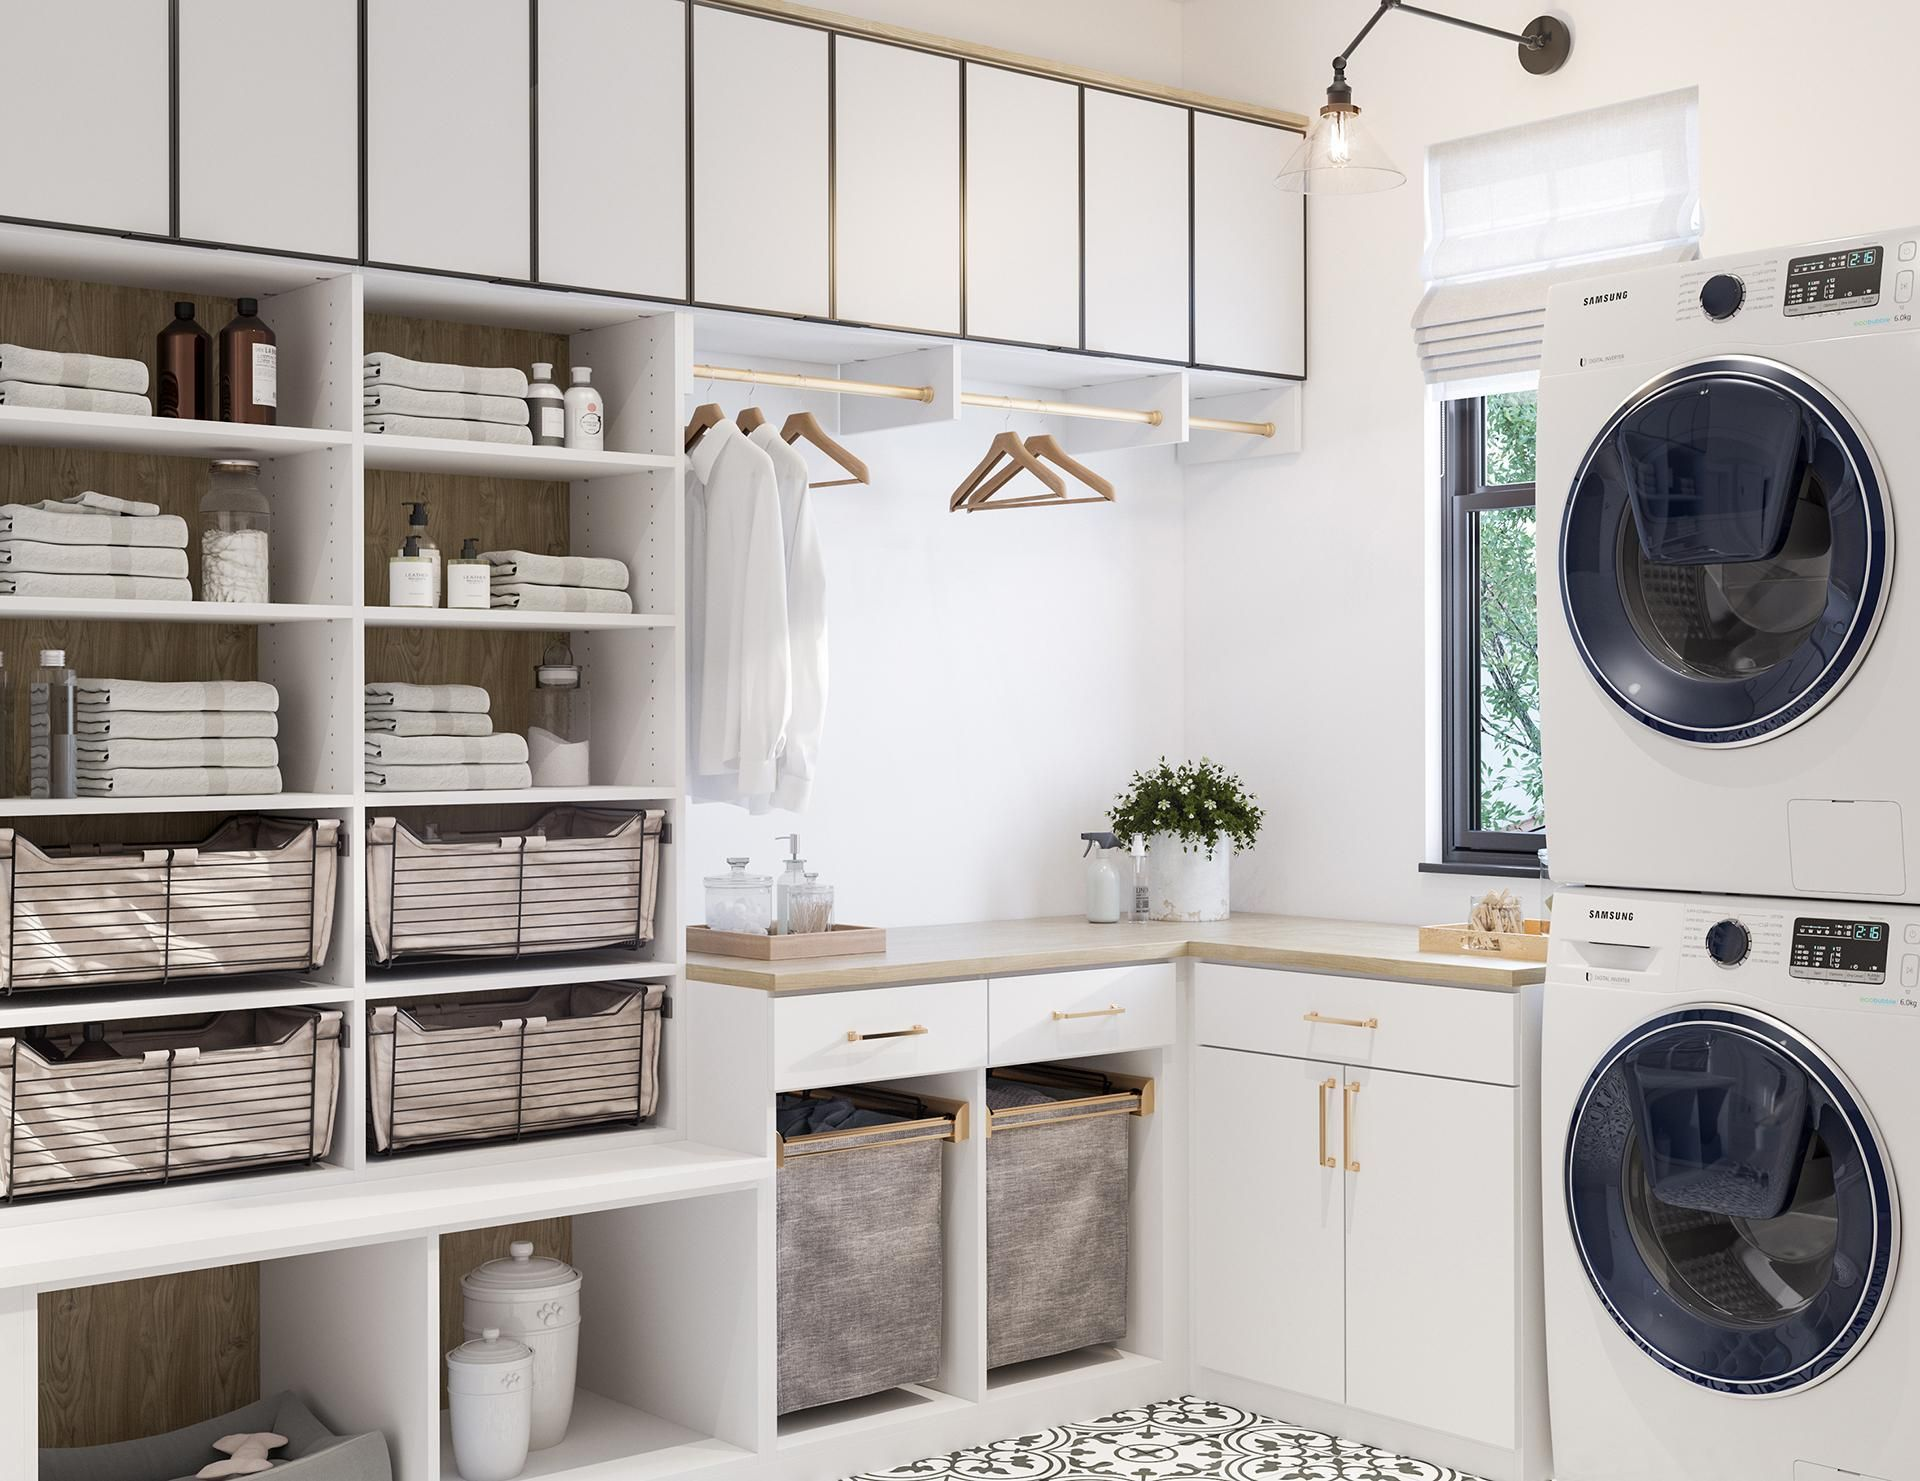 43+ Laundry Room Cabinet Ideas and Design Decorating Minimalist images